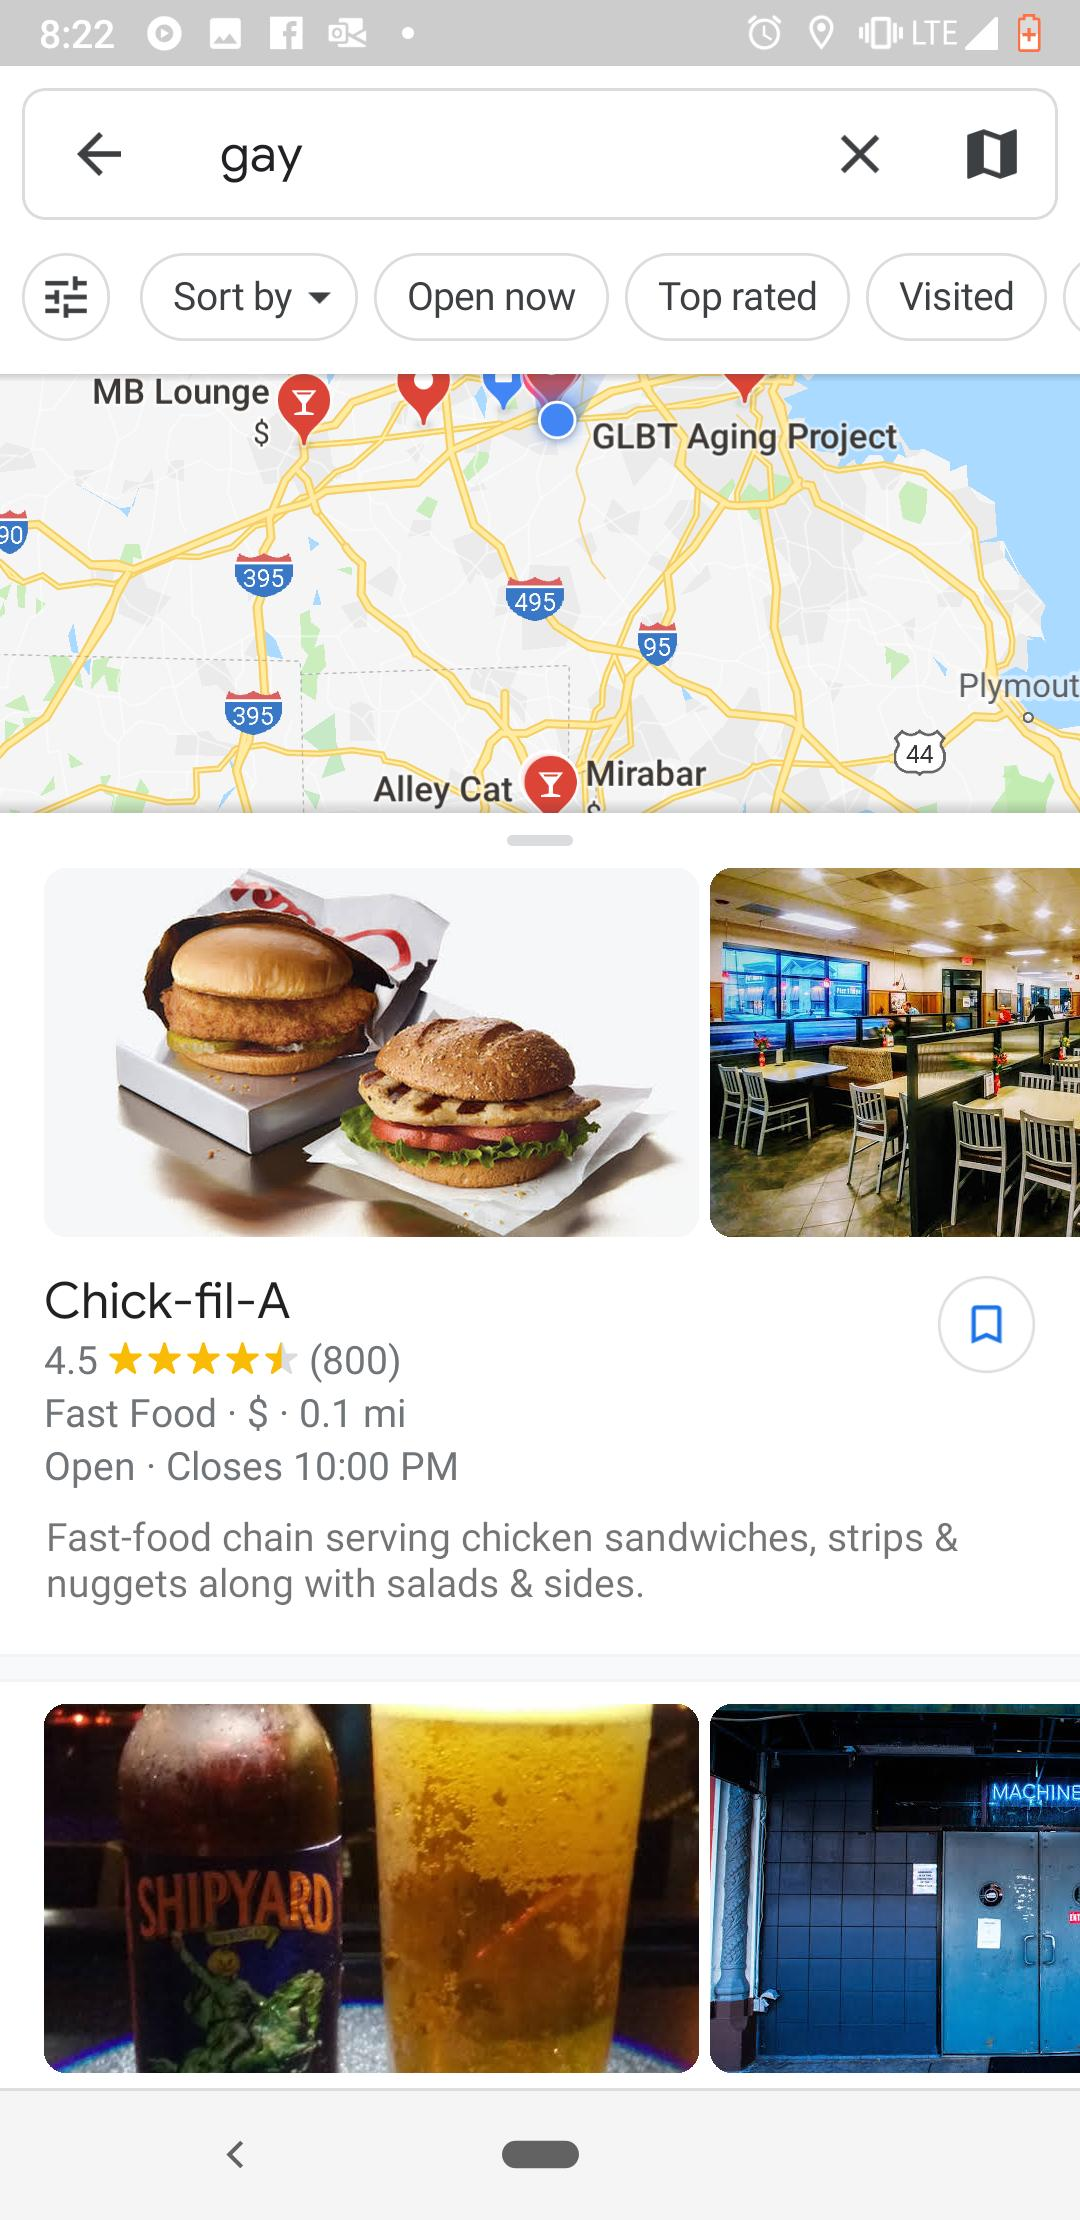 a search for 'gay' which came out with chick fil a